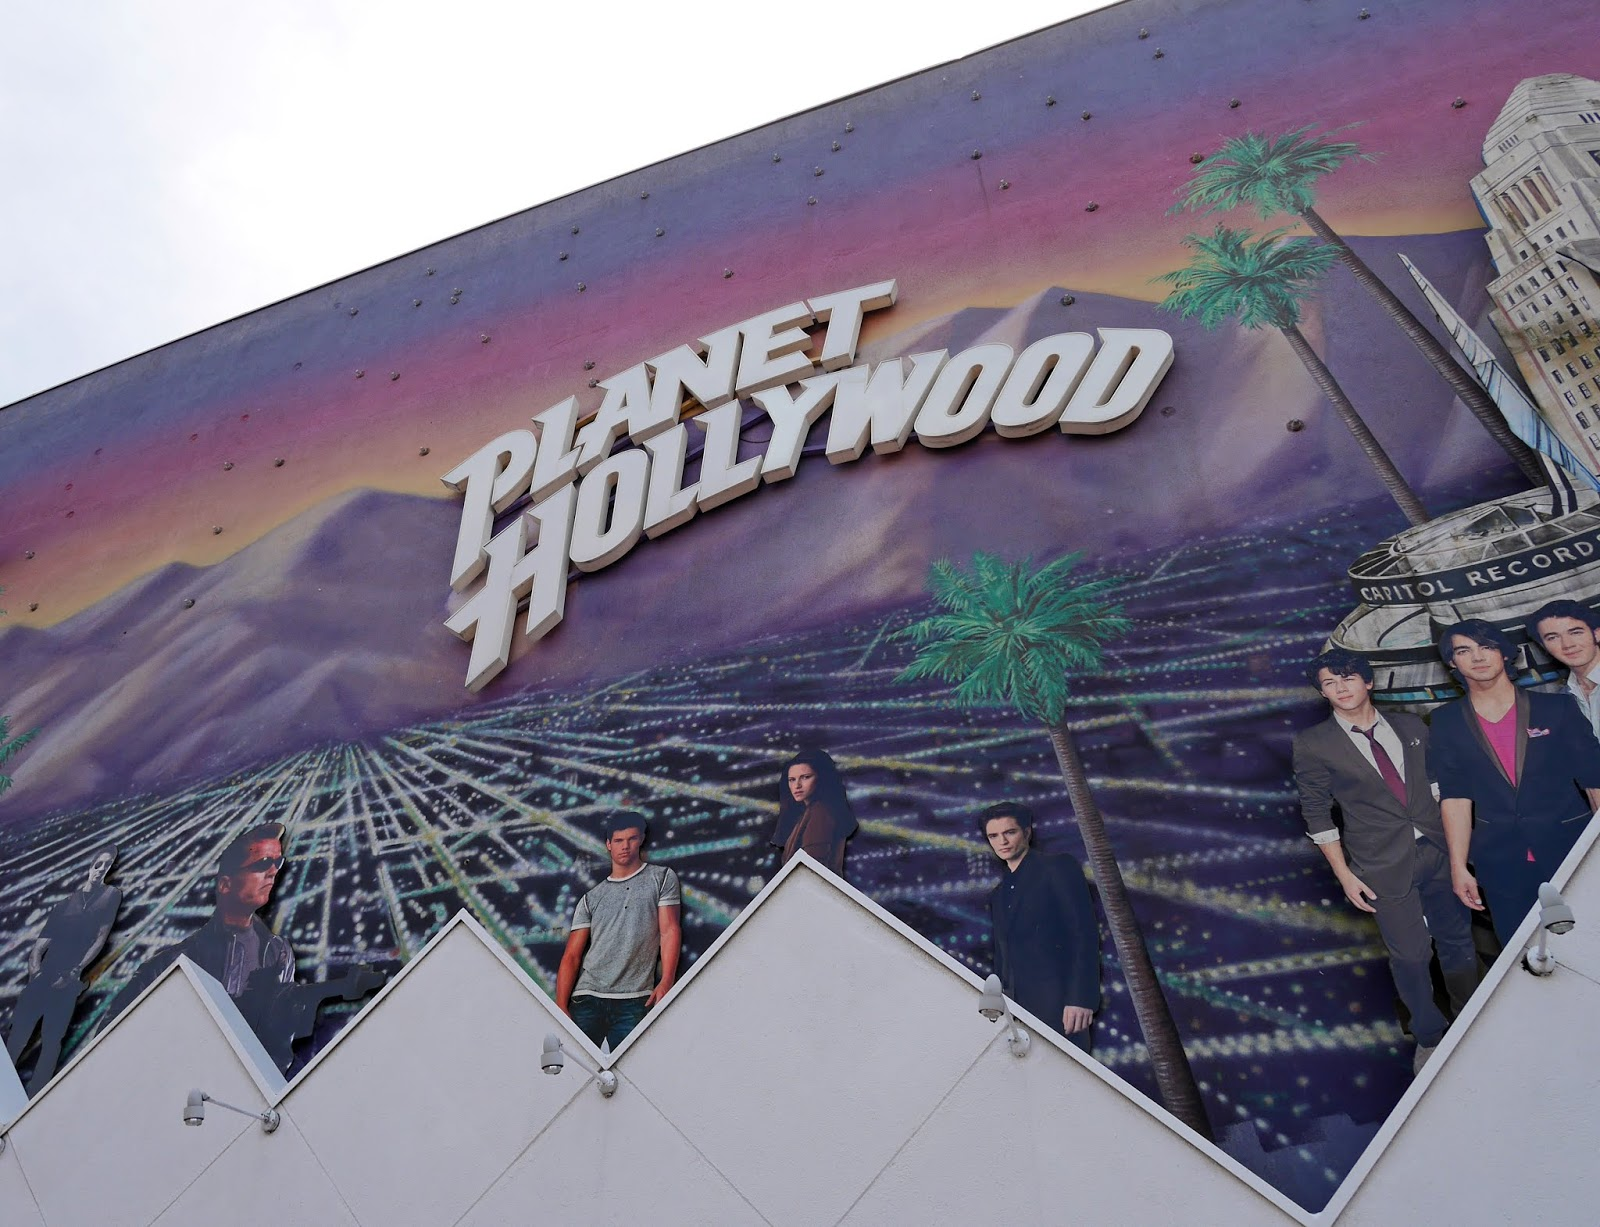 Planet Hollywood at the Disney Village, Disneyland Paris